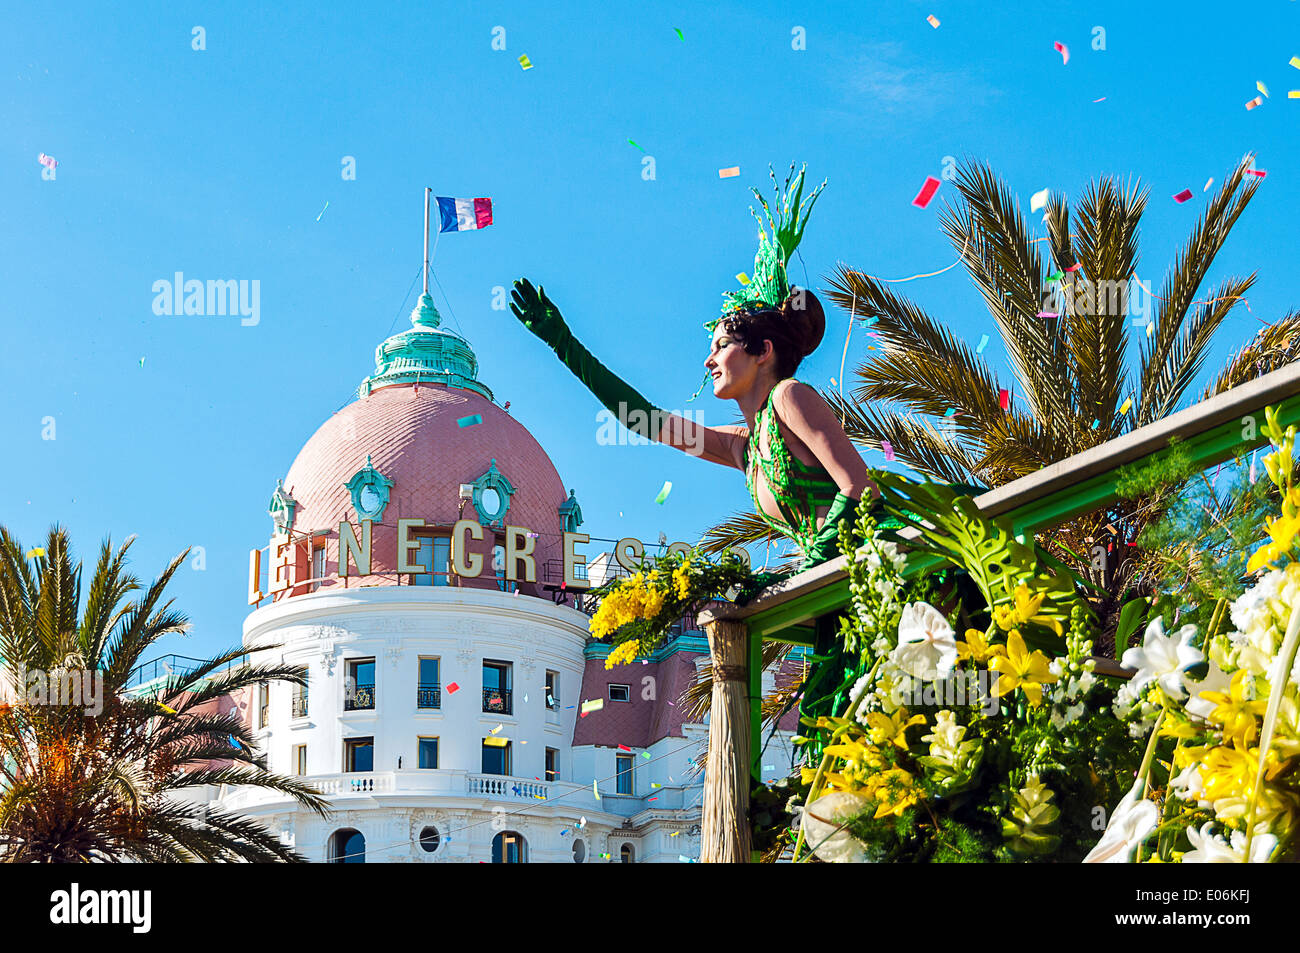 Europe, France, Alpes-Maritimes, Nice. Carnival. Corso fleuri, parade. Young mannequin waving to the crowd in front of Negresco. - Stock Image